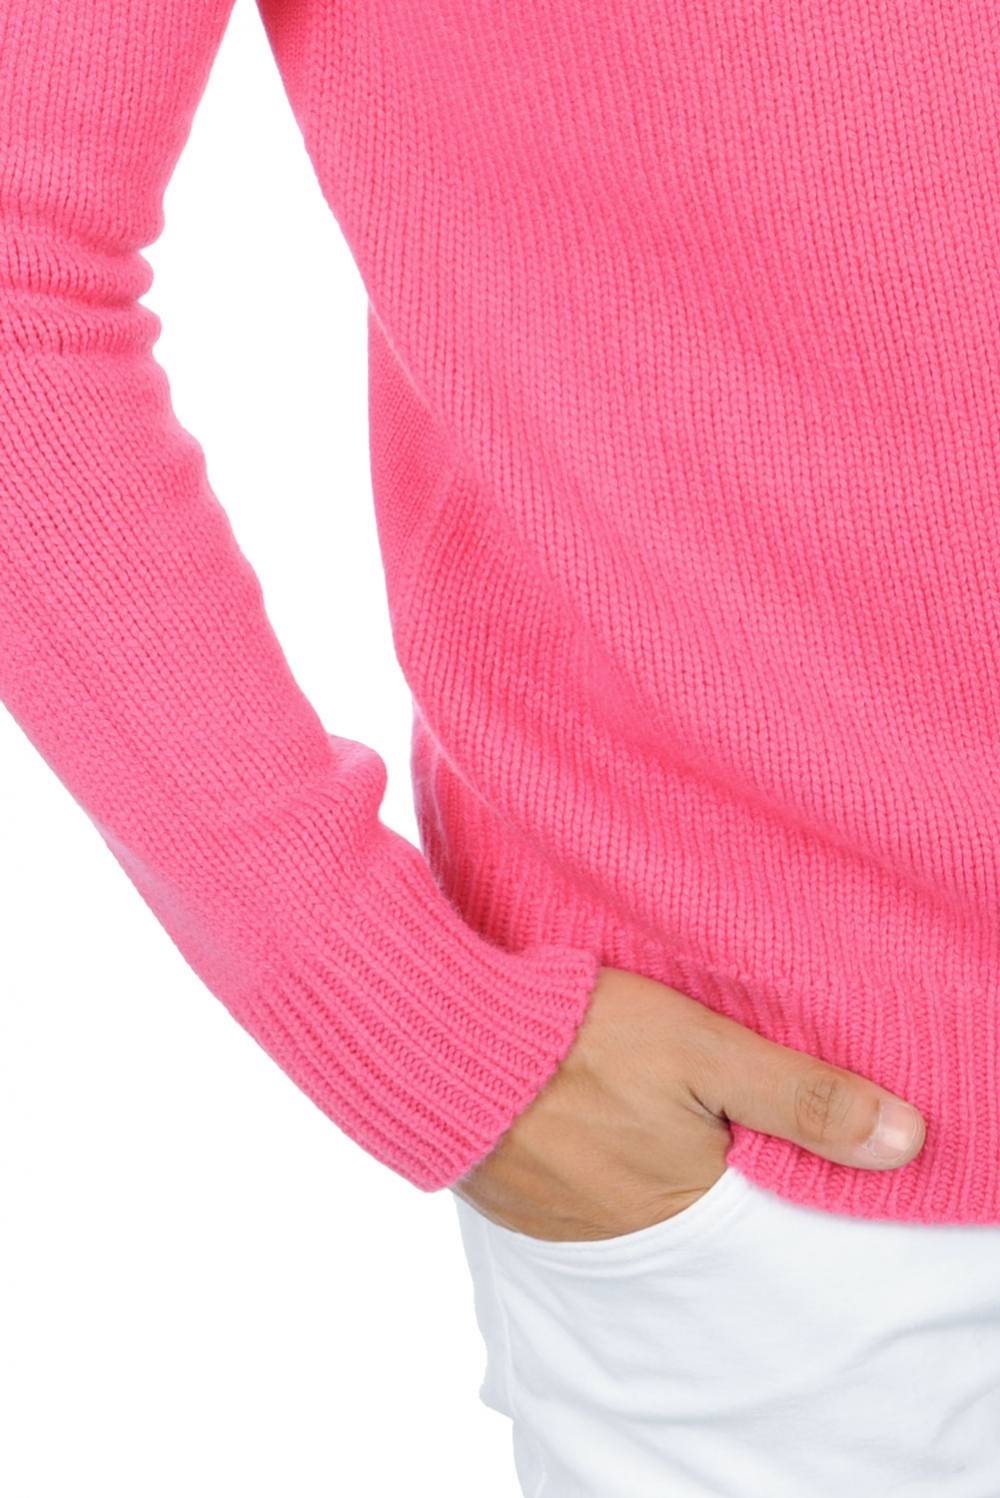 cashmere men polo necks mamadou shocking pink xxl